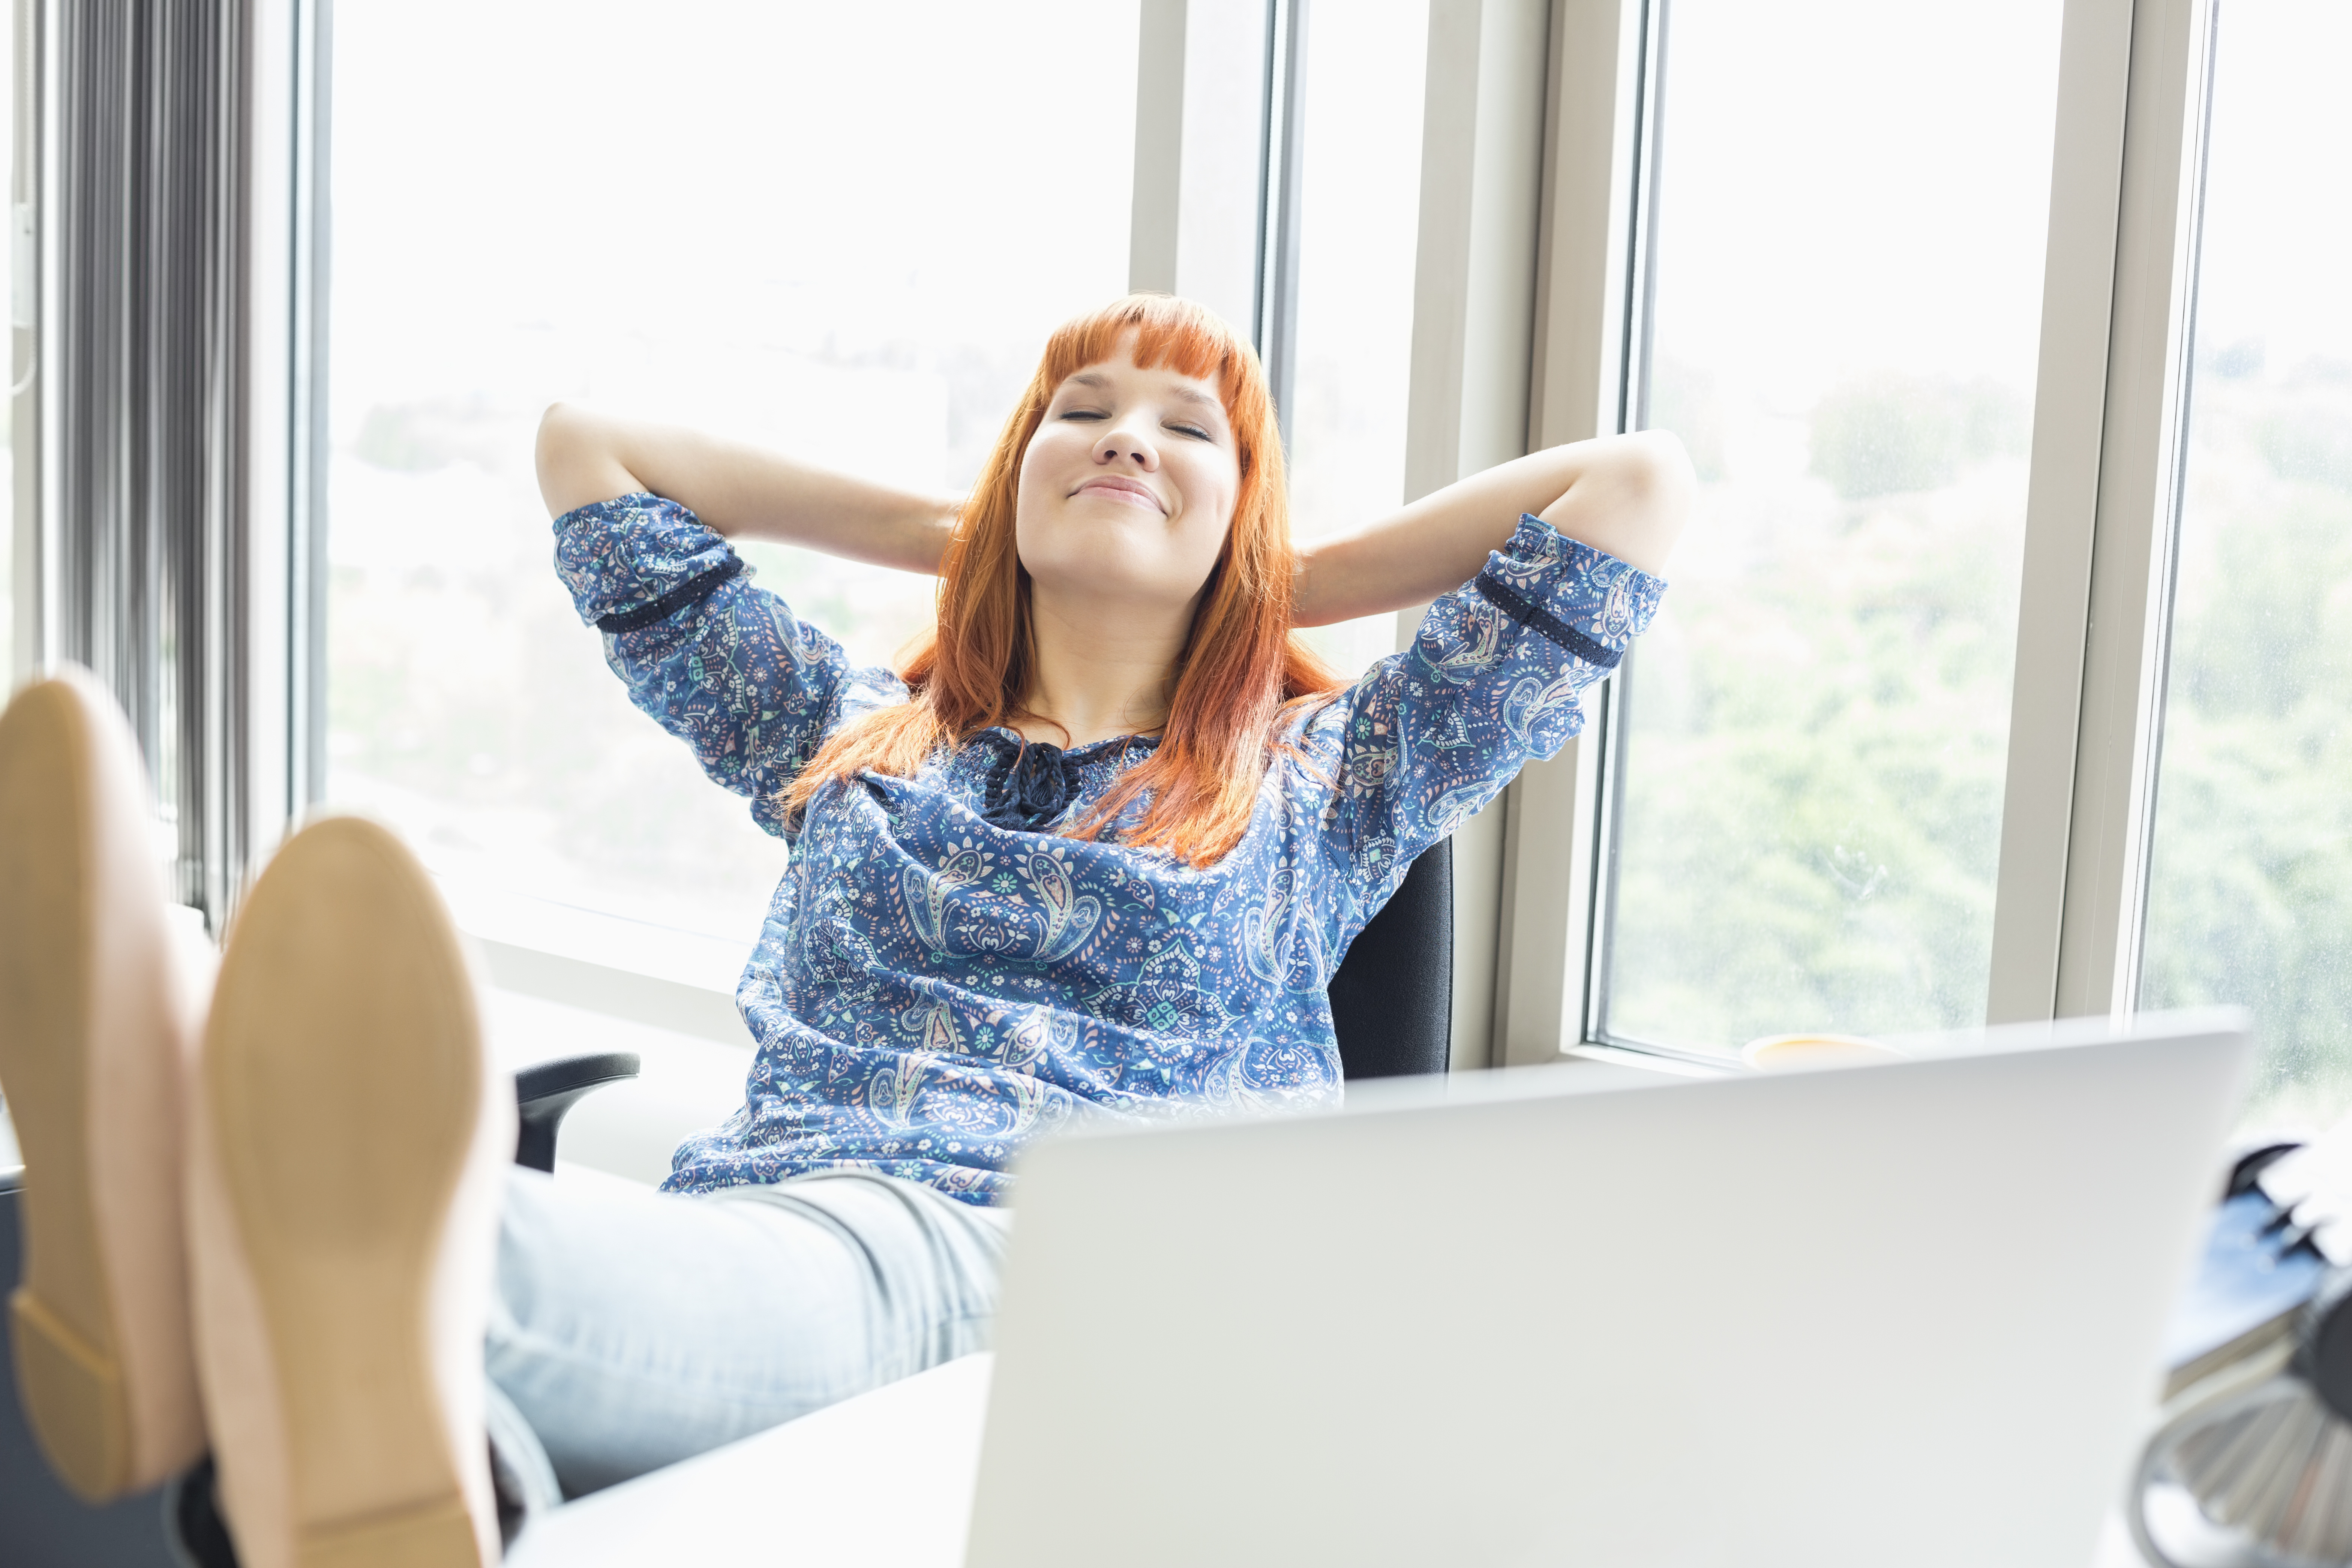 Businesswoman relaxing with feet up at desk in creative office